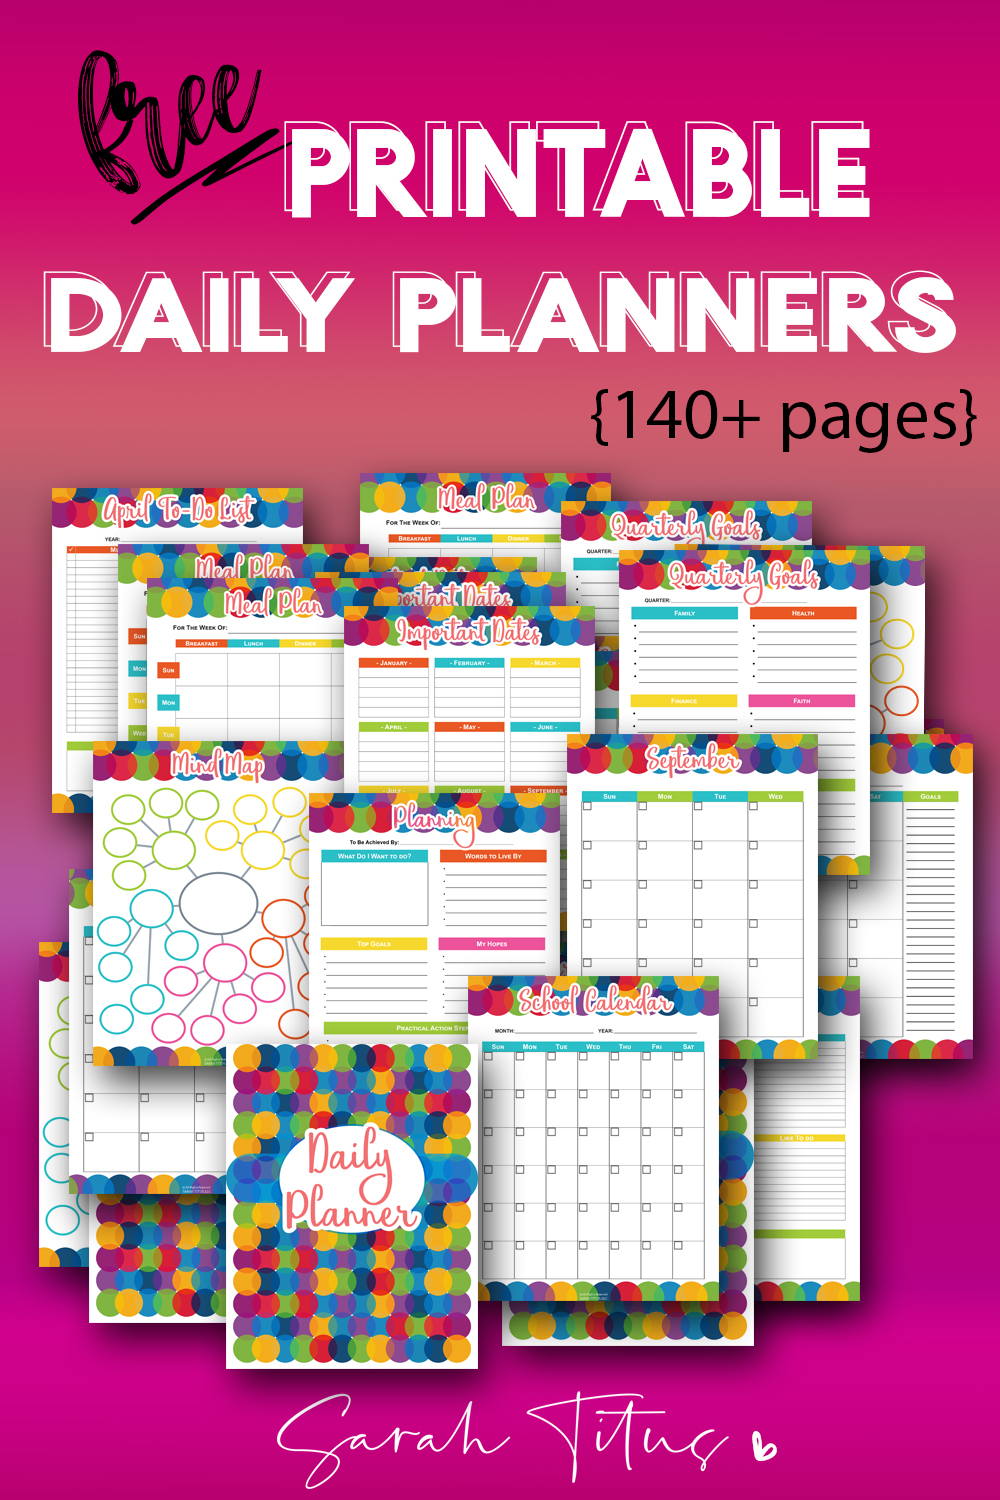 150+ Free Printable Daily Planner Templates That Will Save with regard to Free Printable Daily Planner With Time Slots